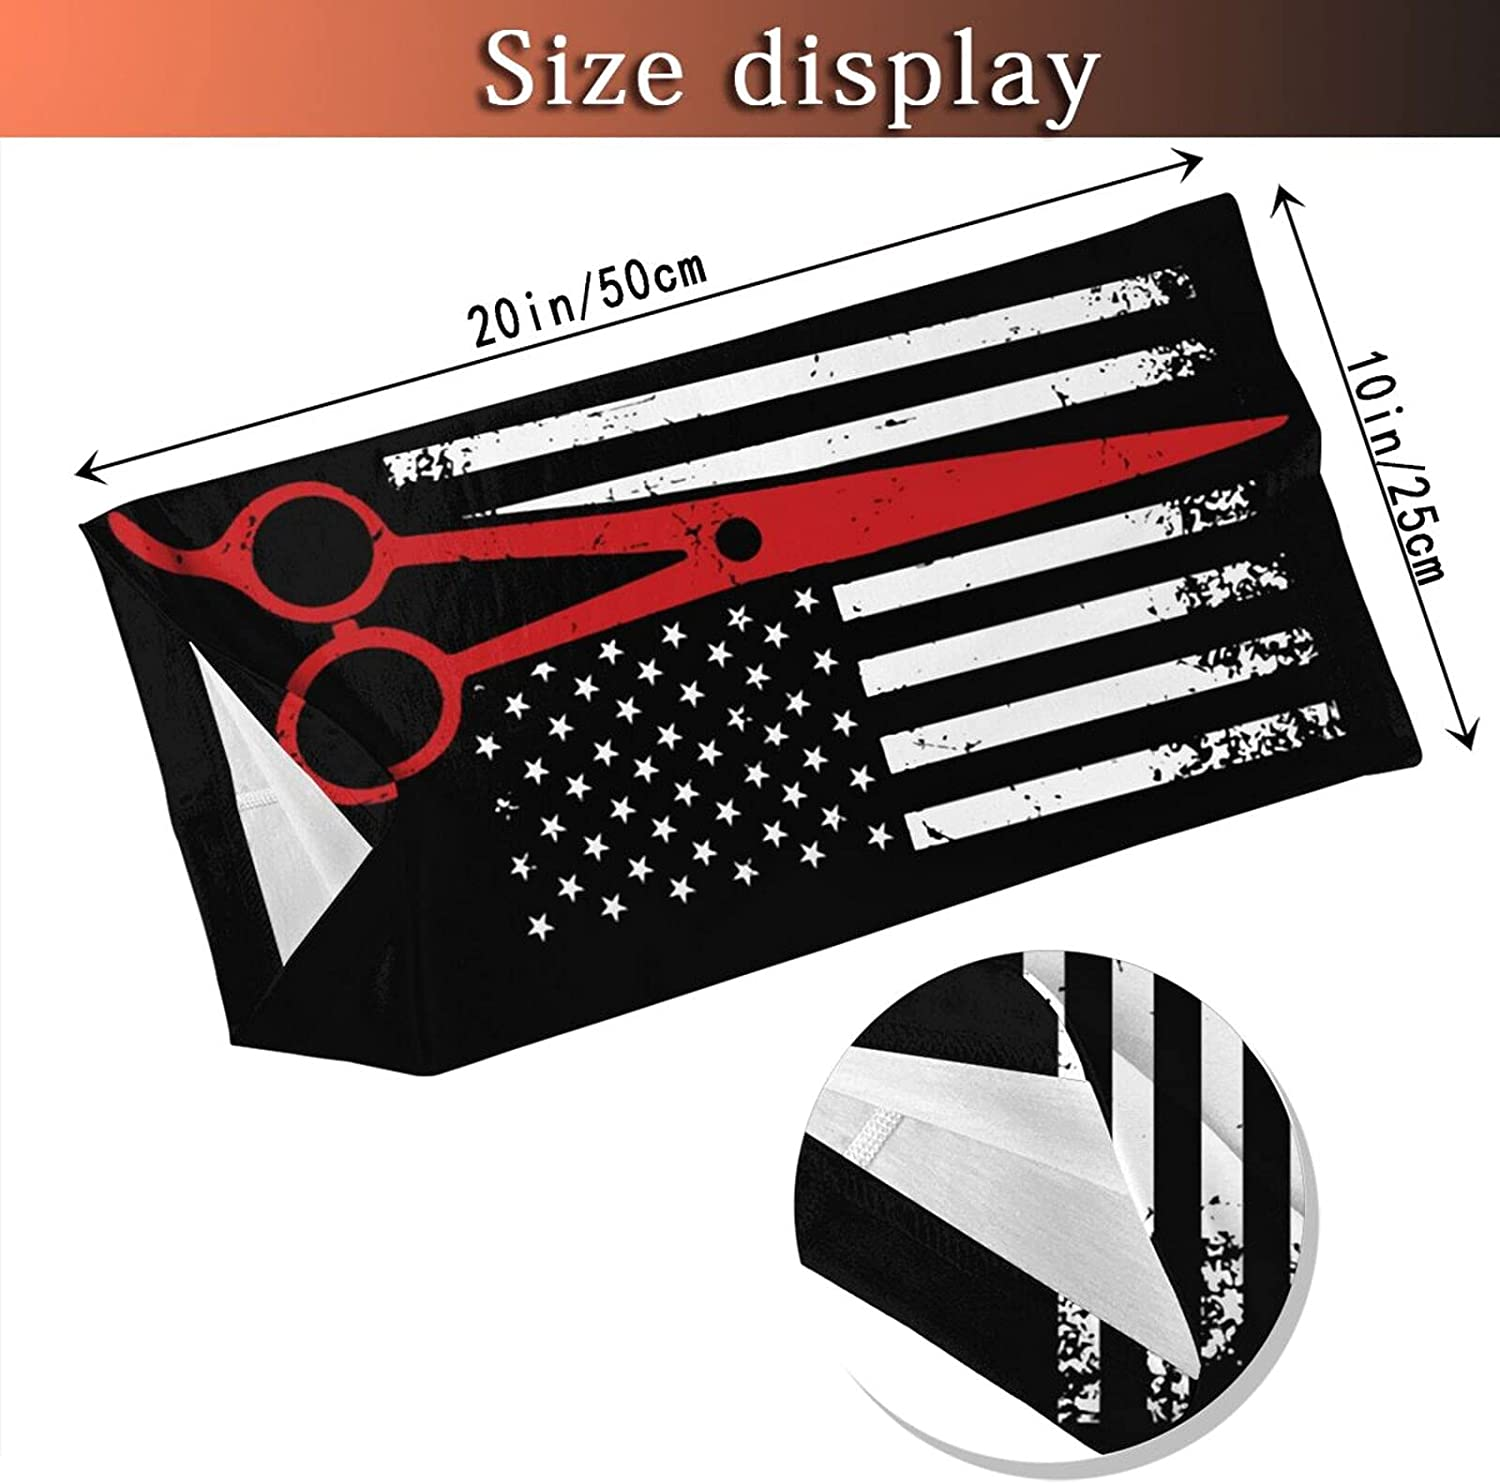 Hairdresser Hairstylist Salon Flag Round Neck Gaiter Bandnas Face Cover Uv Protection Prevent bask in Ice Scarf Headbands Perfect for Motorcycle Cycling Running Festival Raves Outdoors